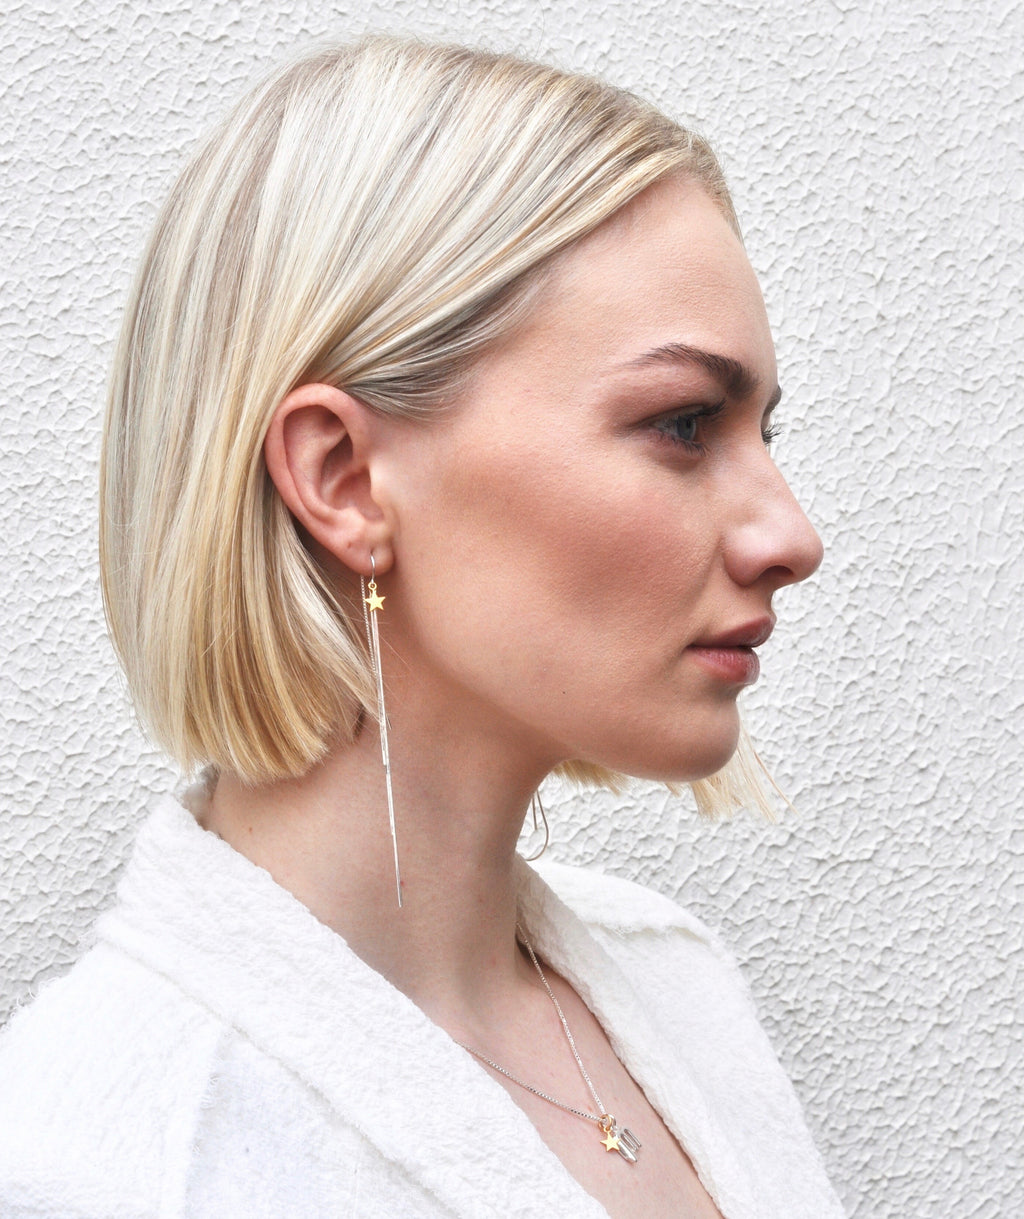 Model wearing Leoni & Vonk electra earrings and white jacket